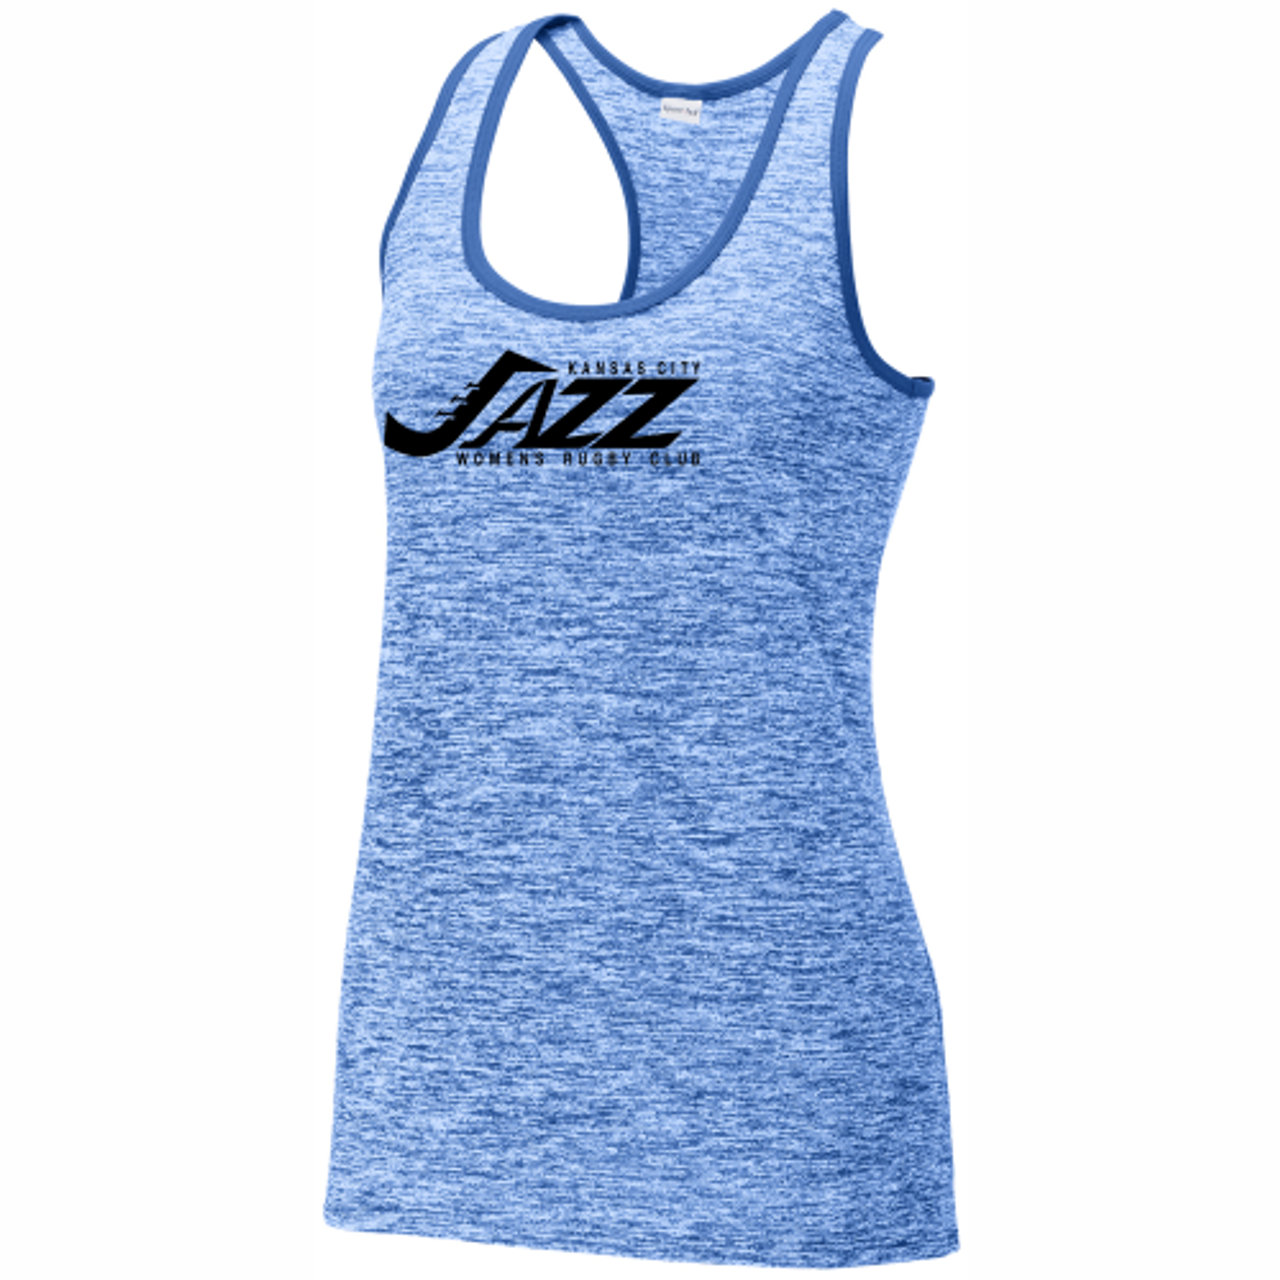 KC Jazz Heathered Performance Tank